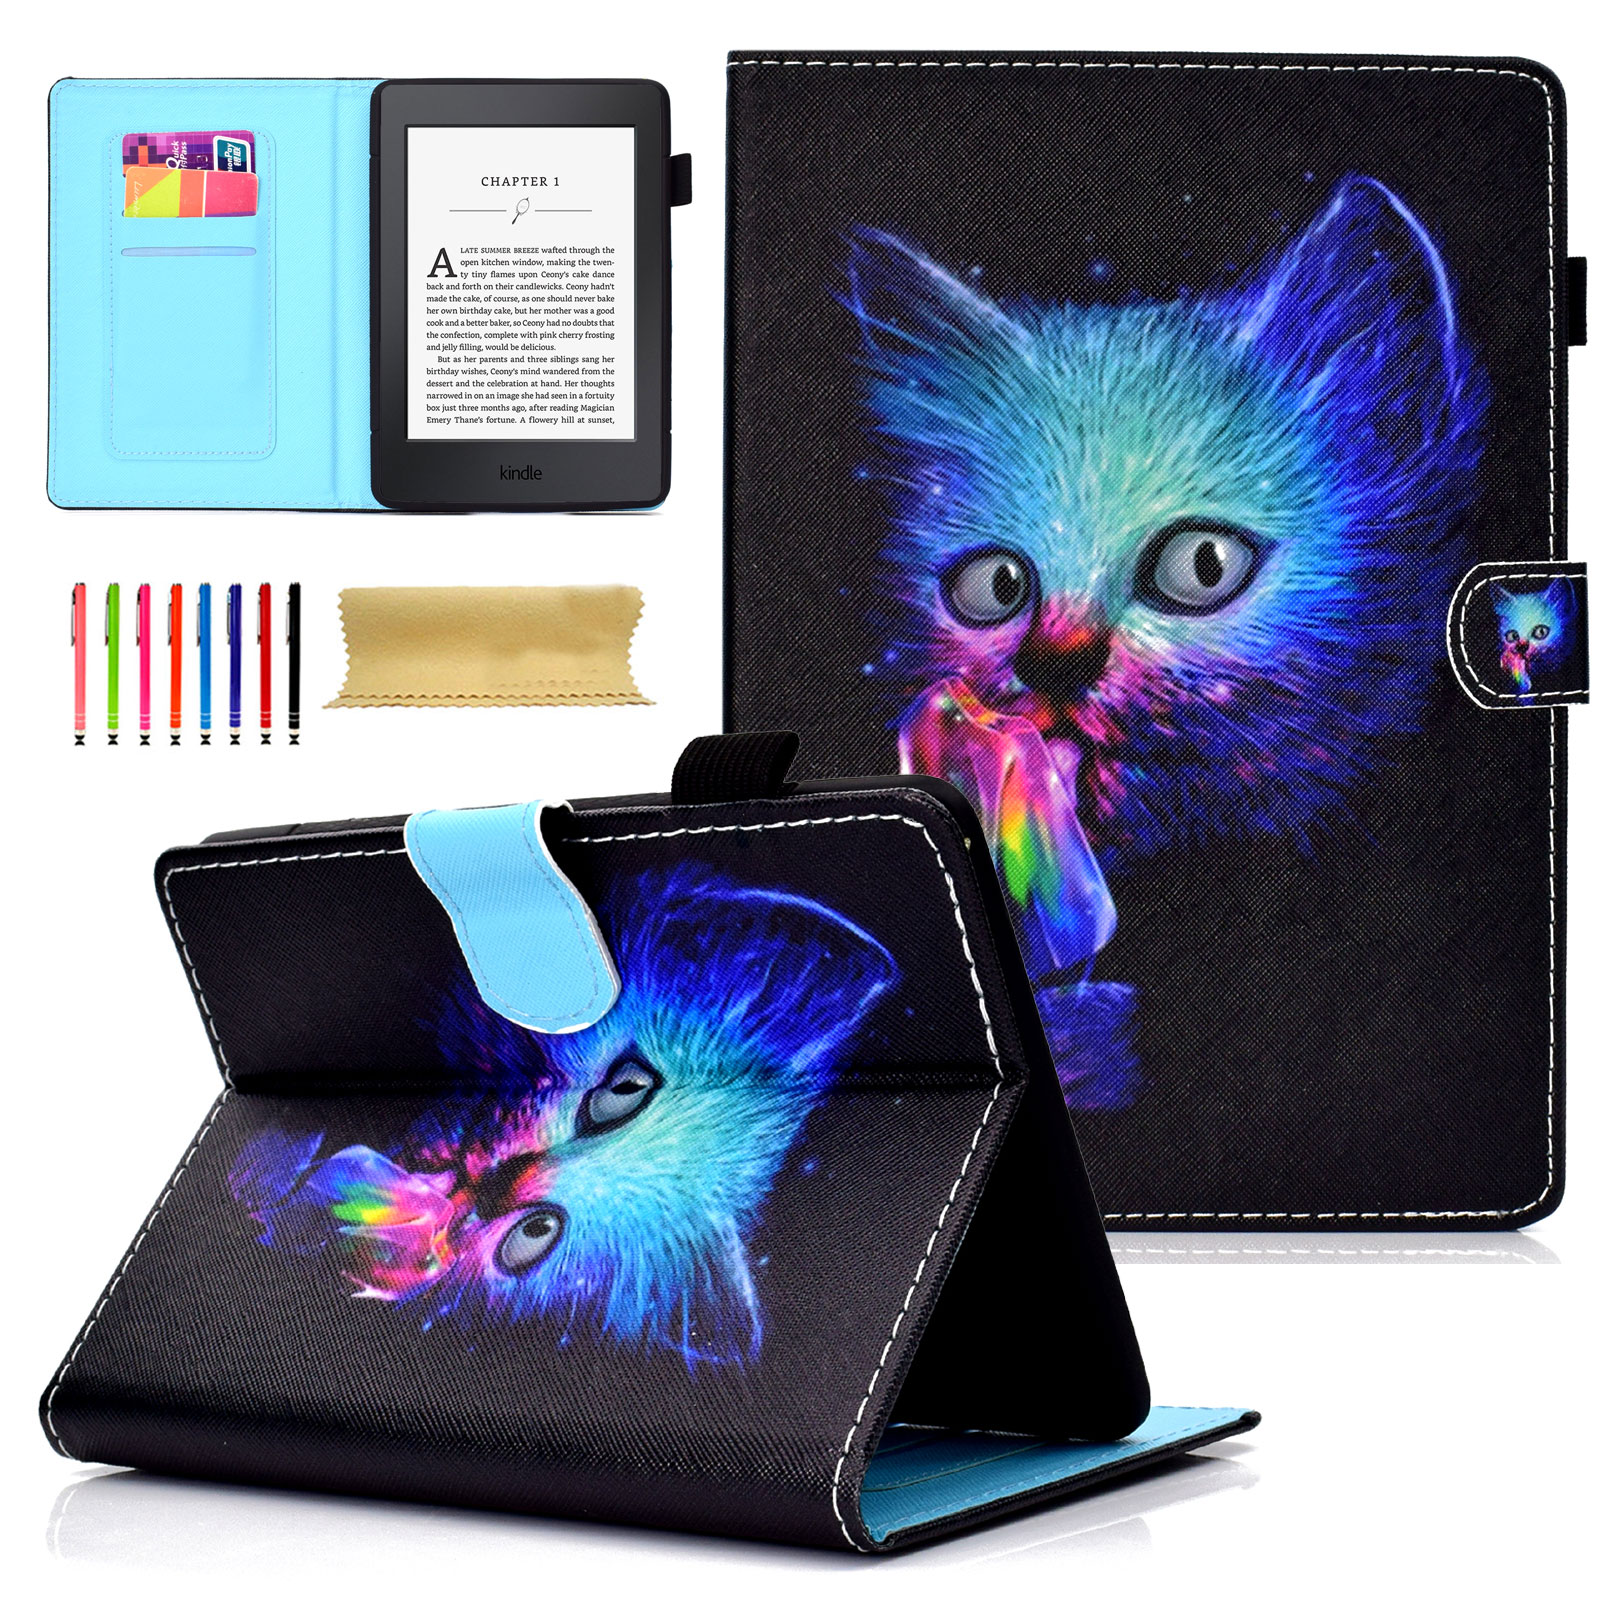 Goodest Smart Case All-New Amazon Kindle Paperwhite E-reader (Fits 2012, 2013, 2014, 2015 and 2016 All-new 300 PPI Version) Flip Folio Smart Stand Case Auto Sleep/Wake Magnetic,Colorful Cat